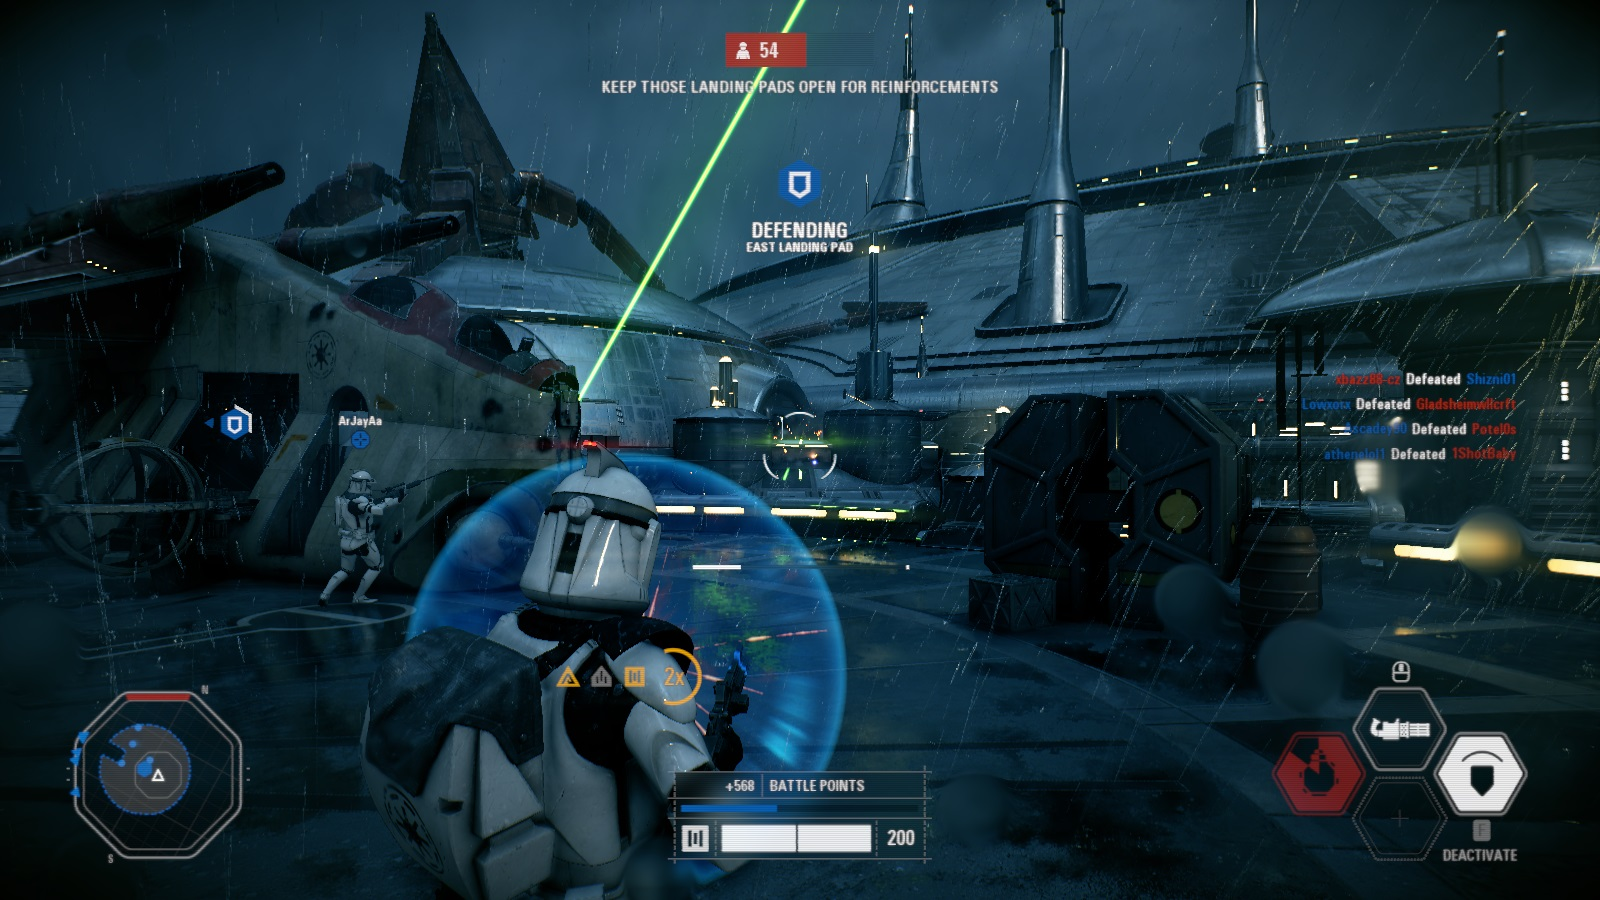 Off In Fighters And Move To The Ground Like First Games Death Star DLC Strike Is Simple Fun With No Heroes Or Vehicles Only One Objective